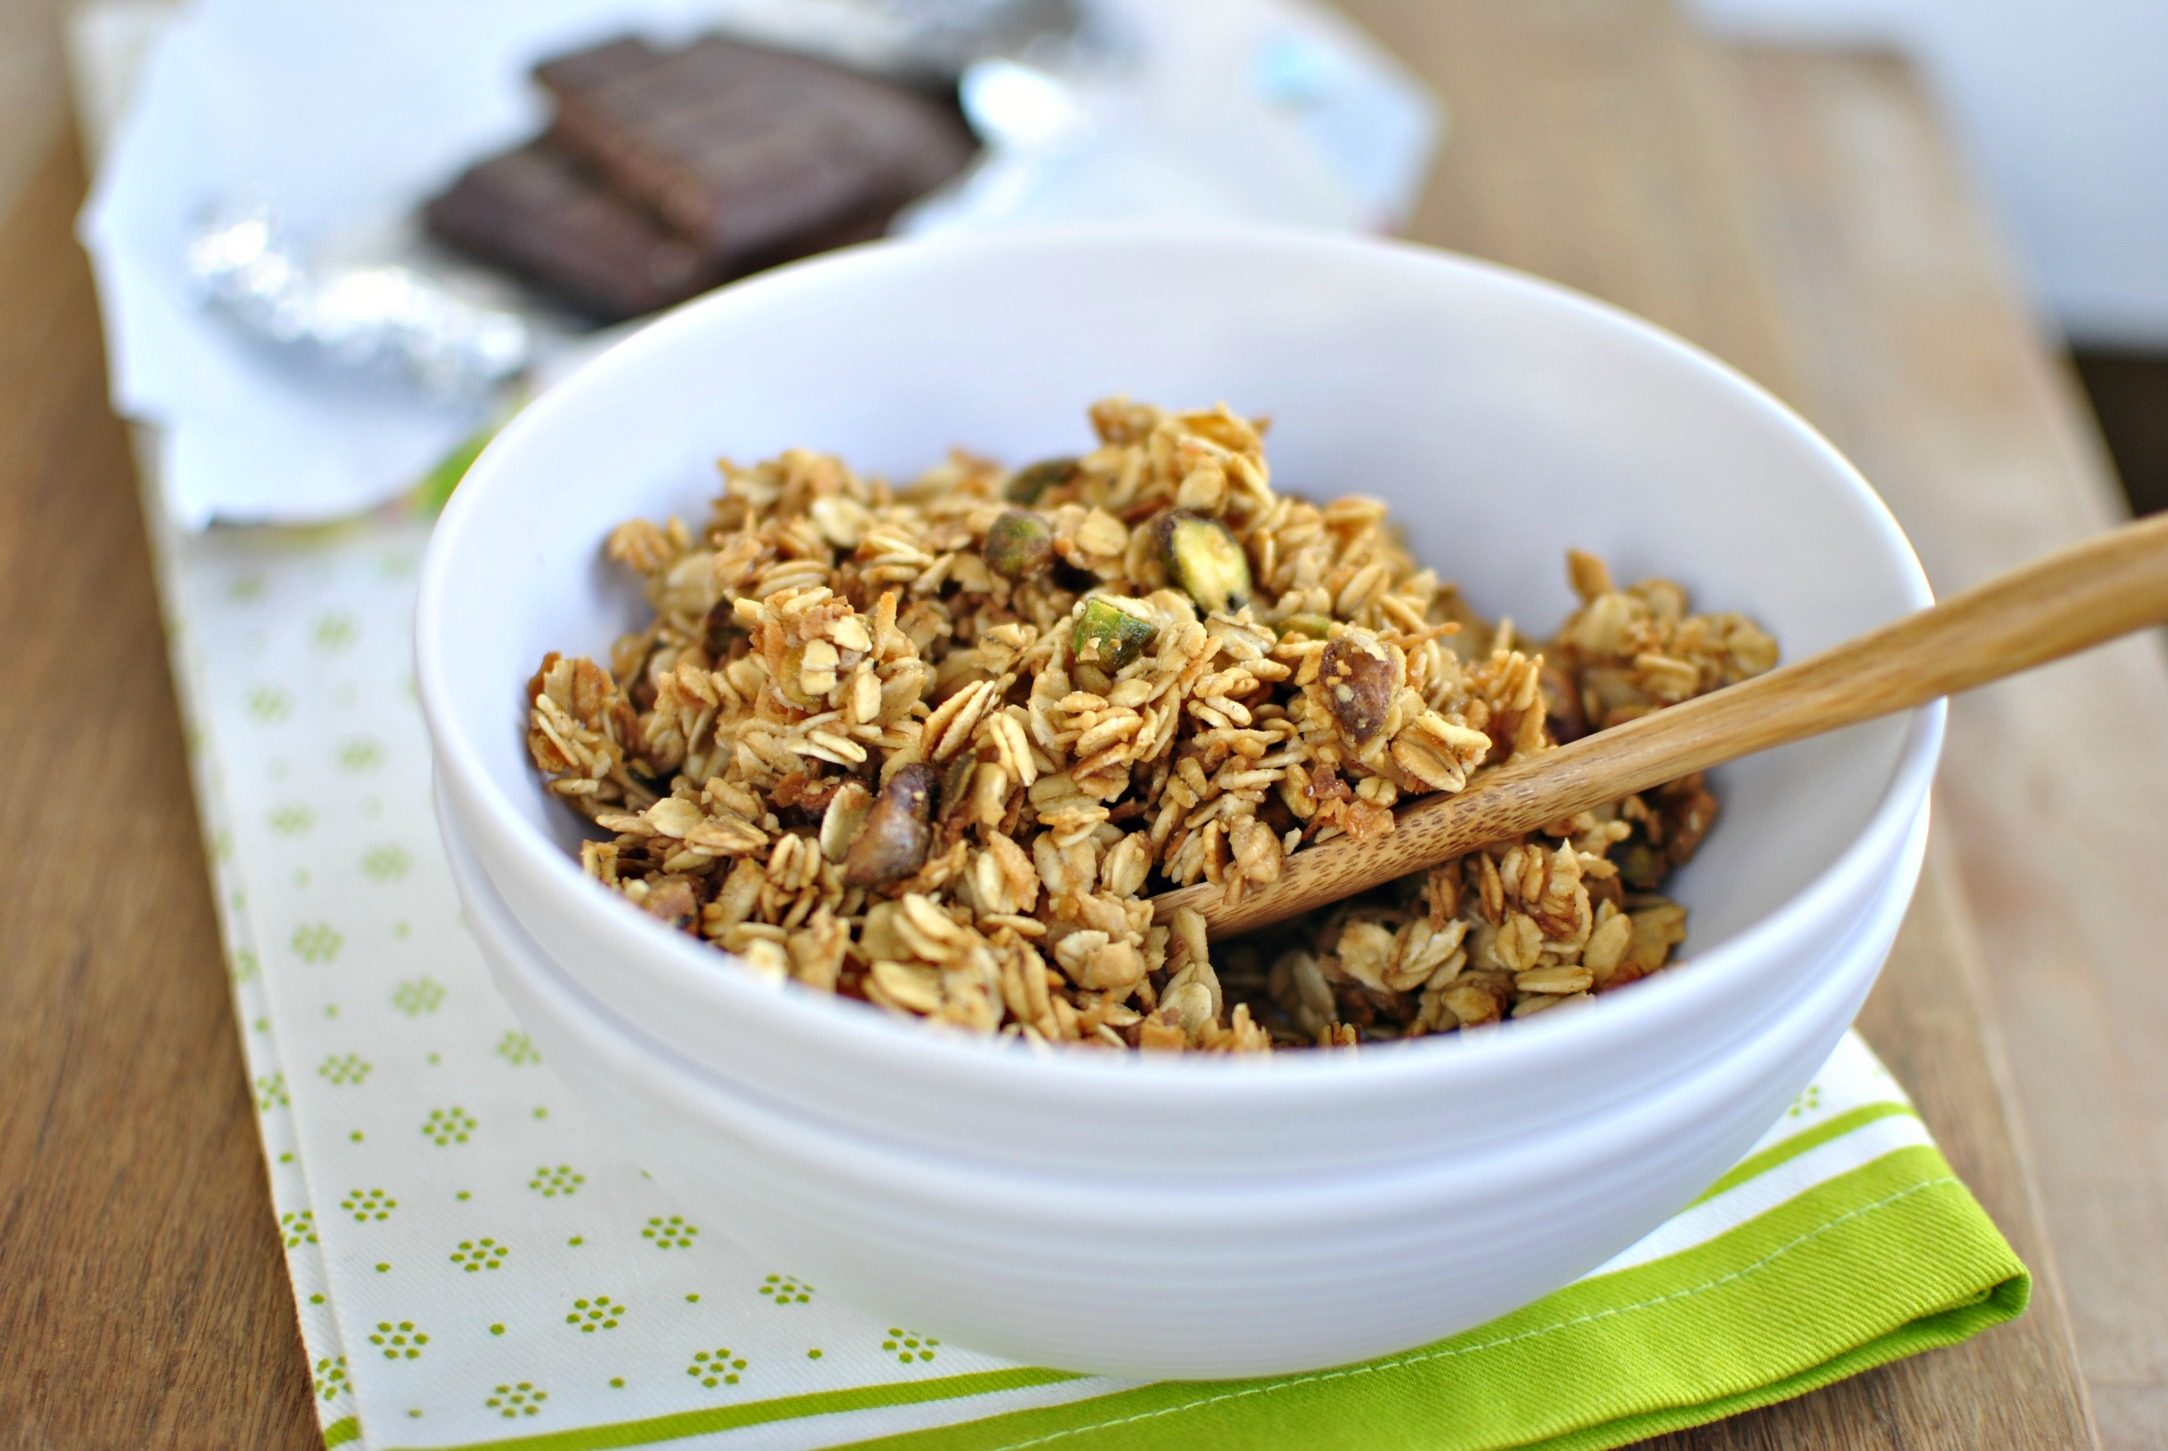 Spiced-Pistachio-and-Toasted-Coconut-Granola-Cereal